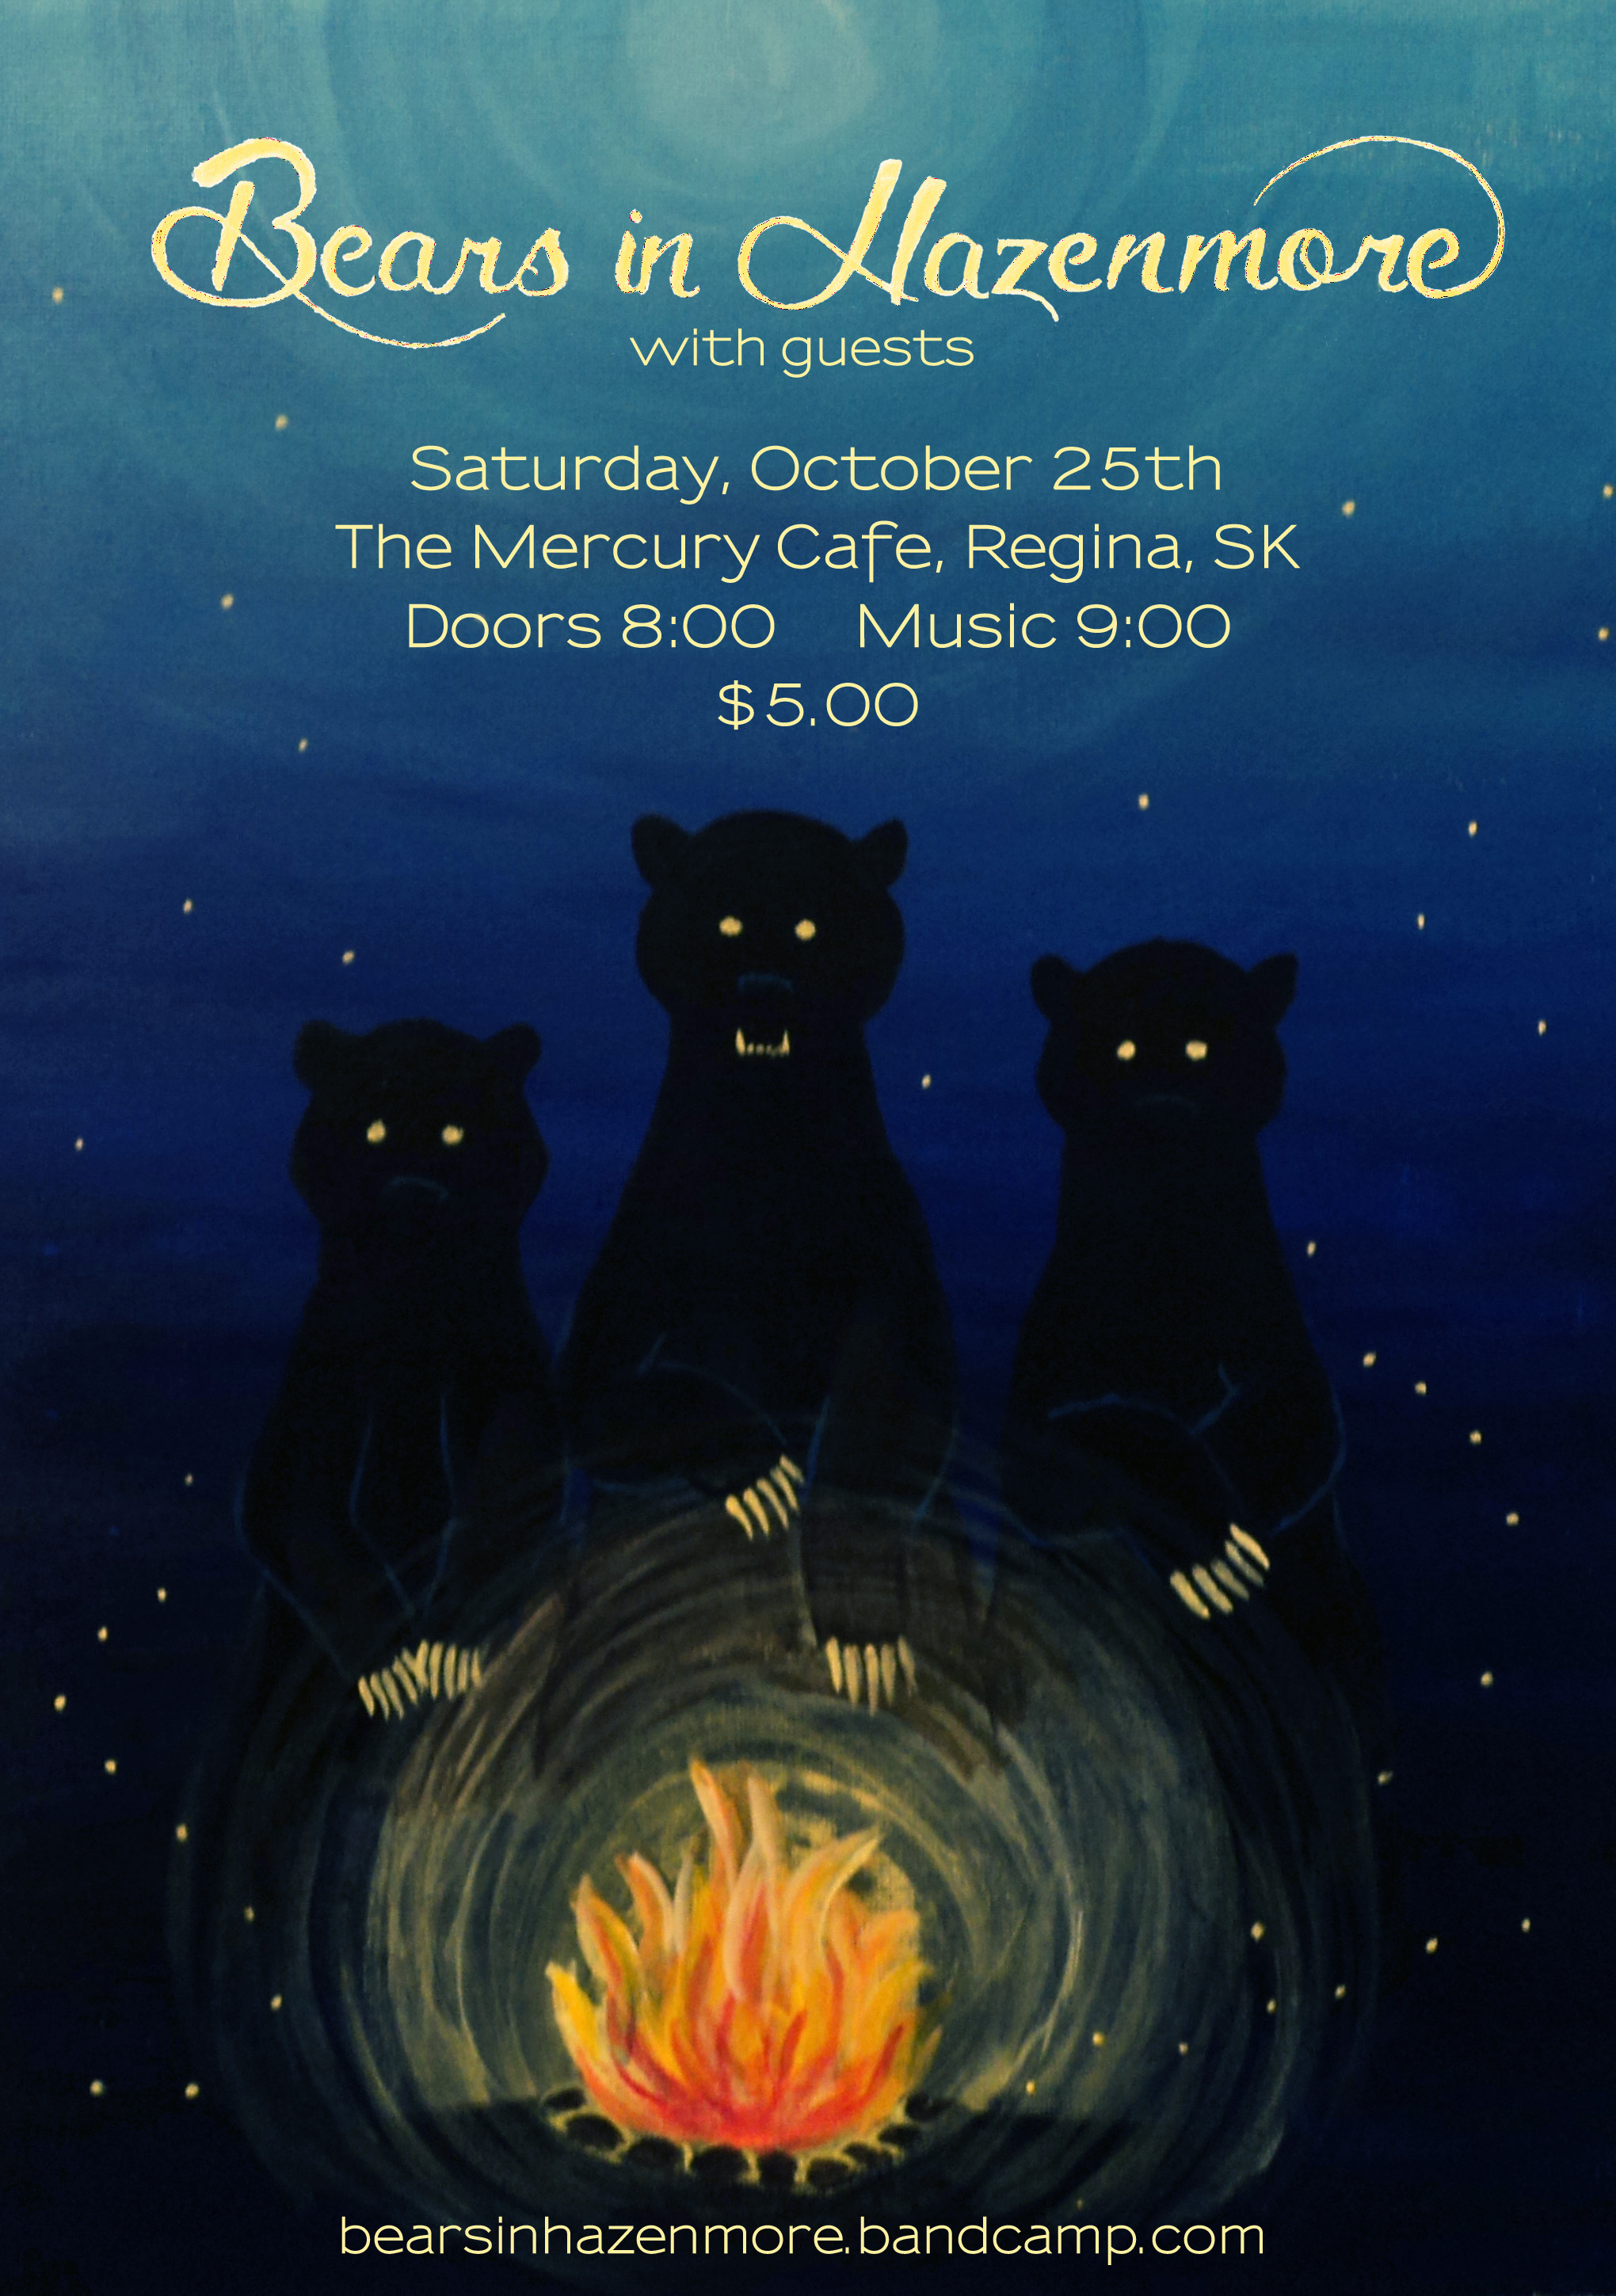 Bears in Hazenmore Poster, Oct 2014